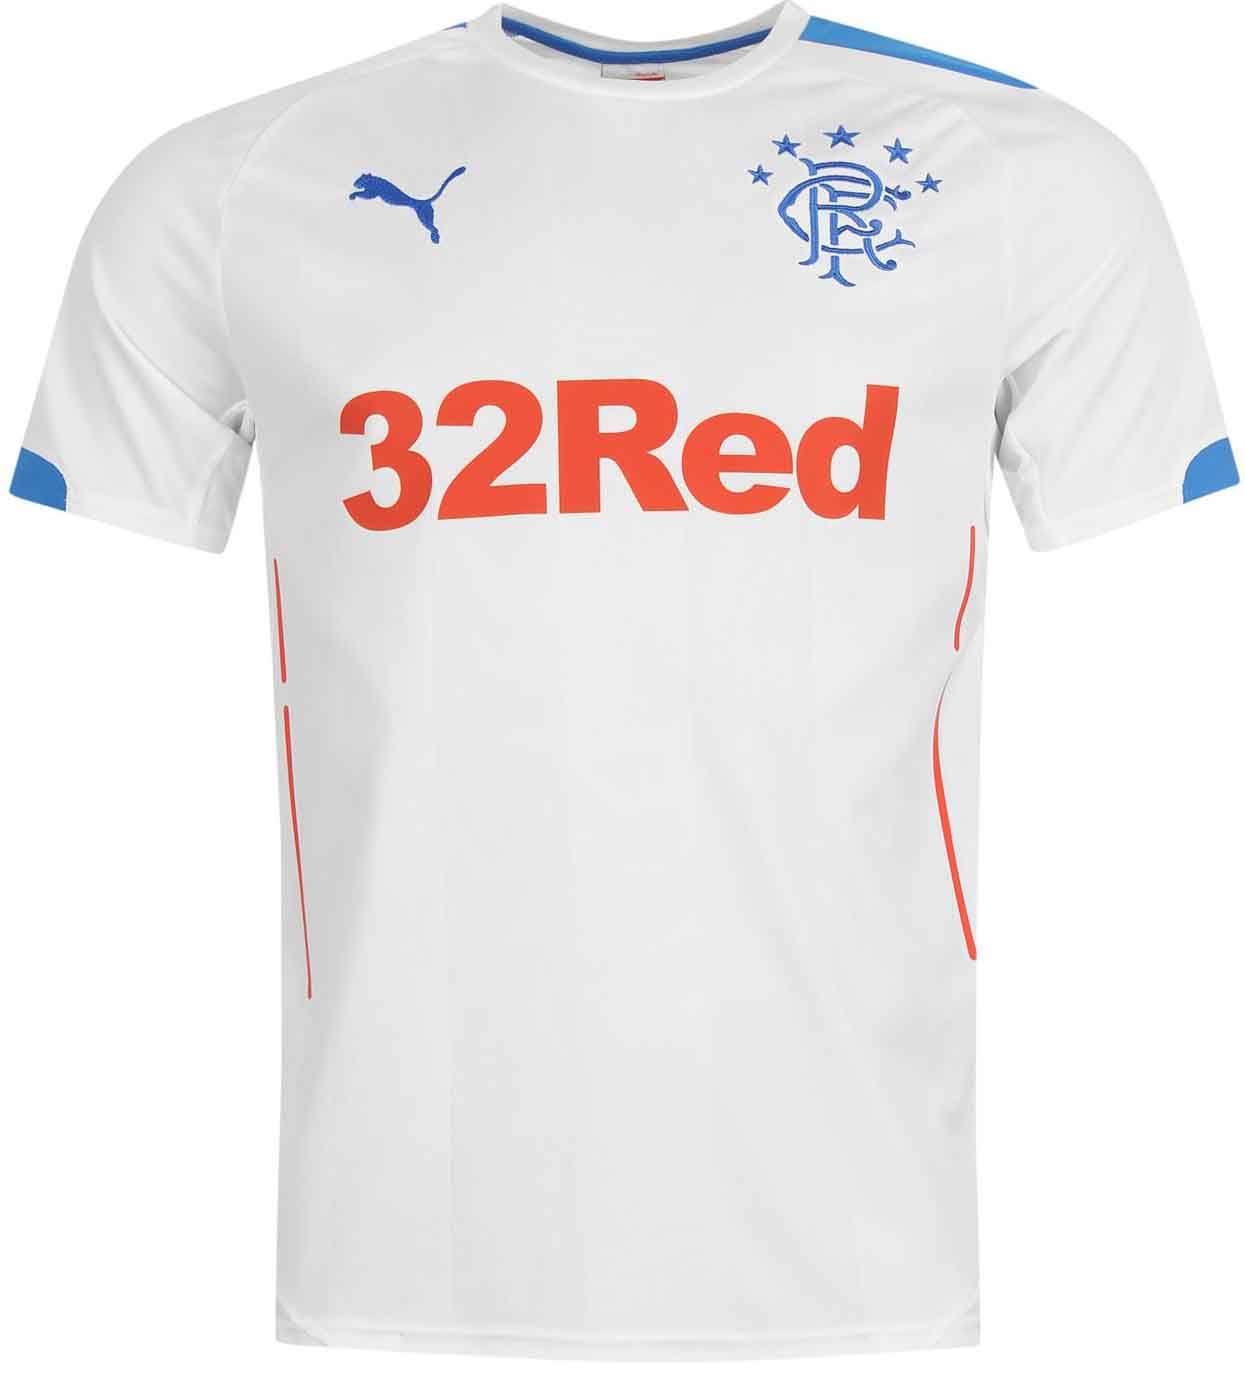 651a019d1db Based on the same template as the Glasgow Rangers 2014-15 Third Jersey, the  new Ragers 2014-2015 Away Shirt is mainly white with blue and red  applications.